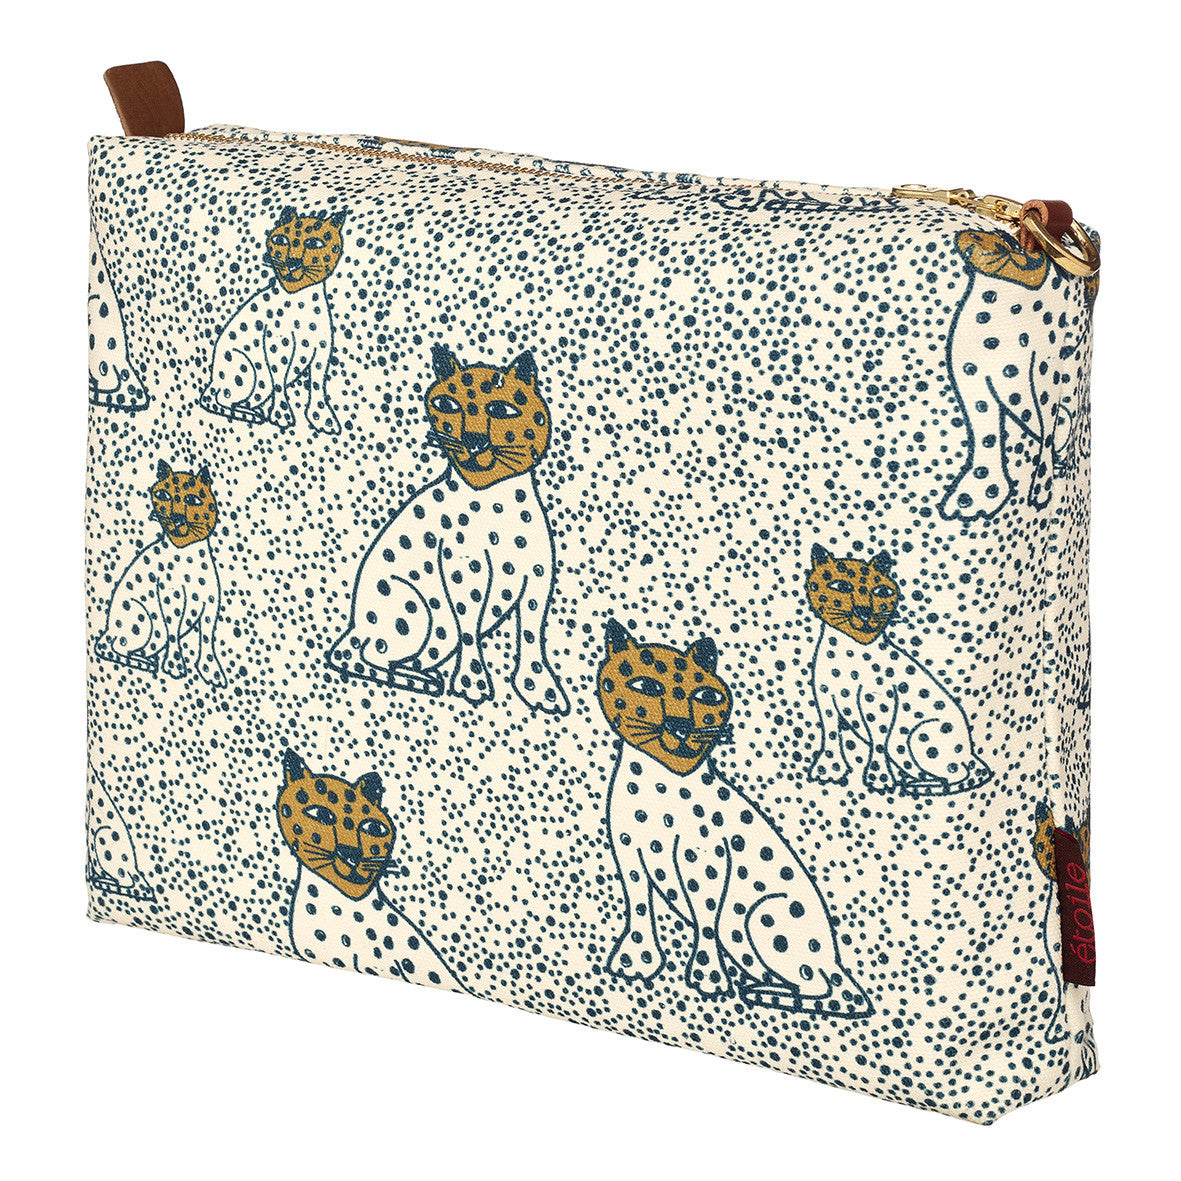 Graphic Leopard Pattern Cotton Canvas Vanity Bag in Petrol Blue & Gold